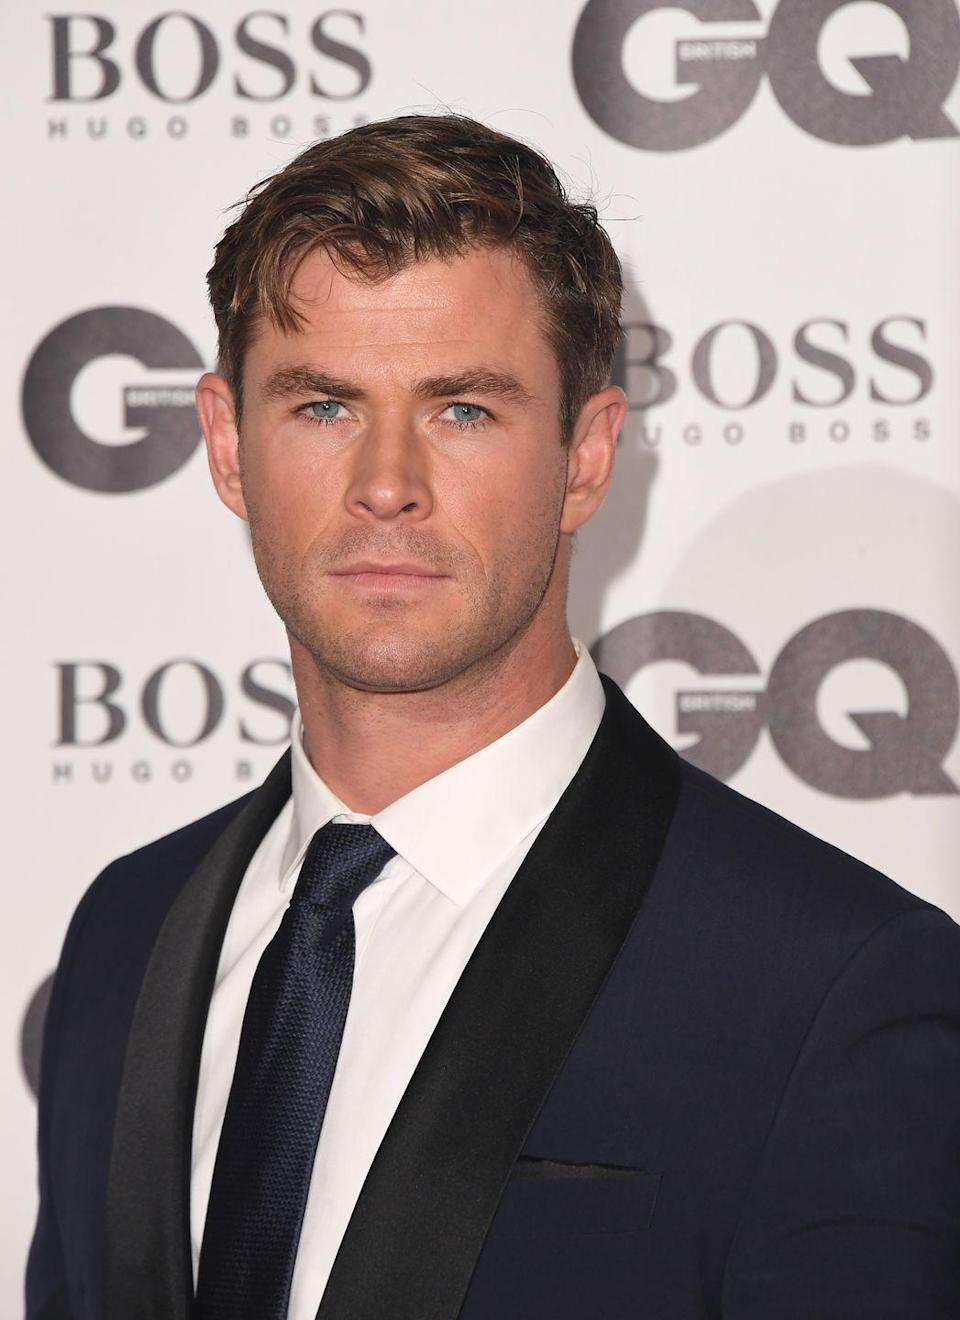 <p>Even without any facial hair, there's no denying that Hemsworth has superhero good looks. Lucky man.</p>